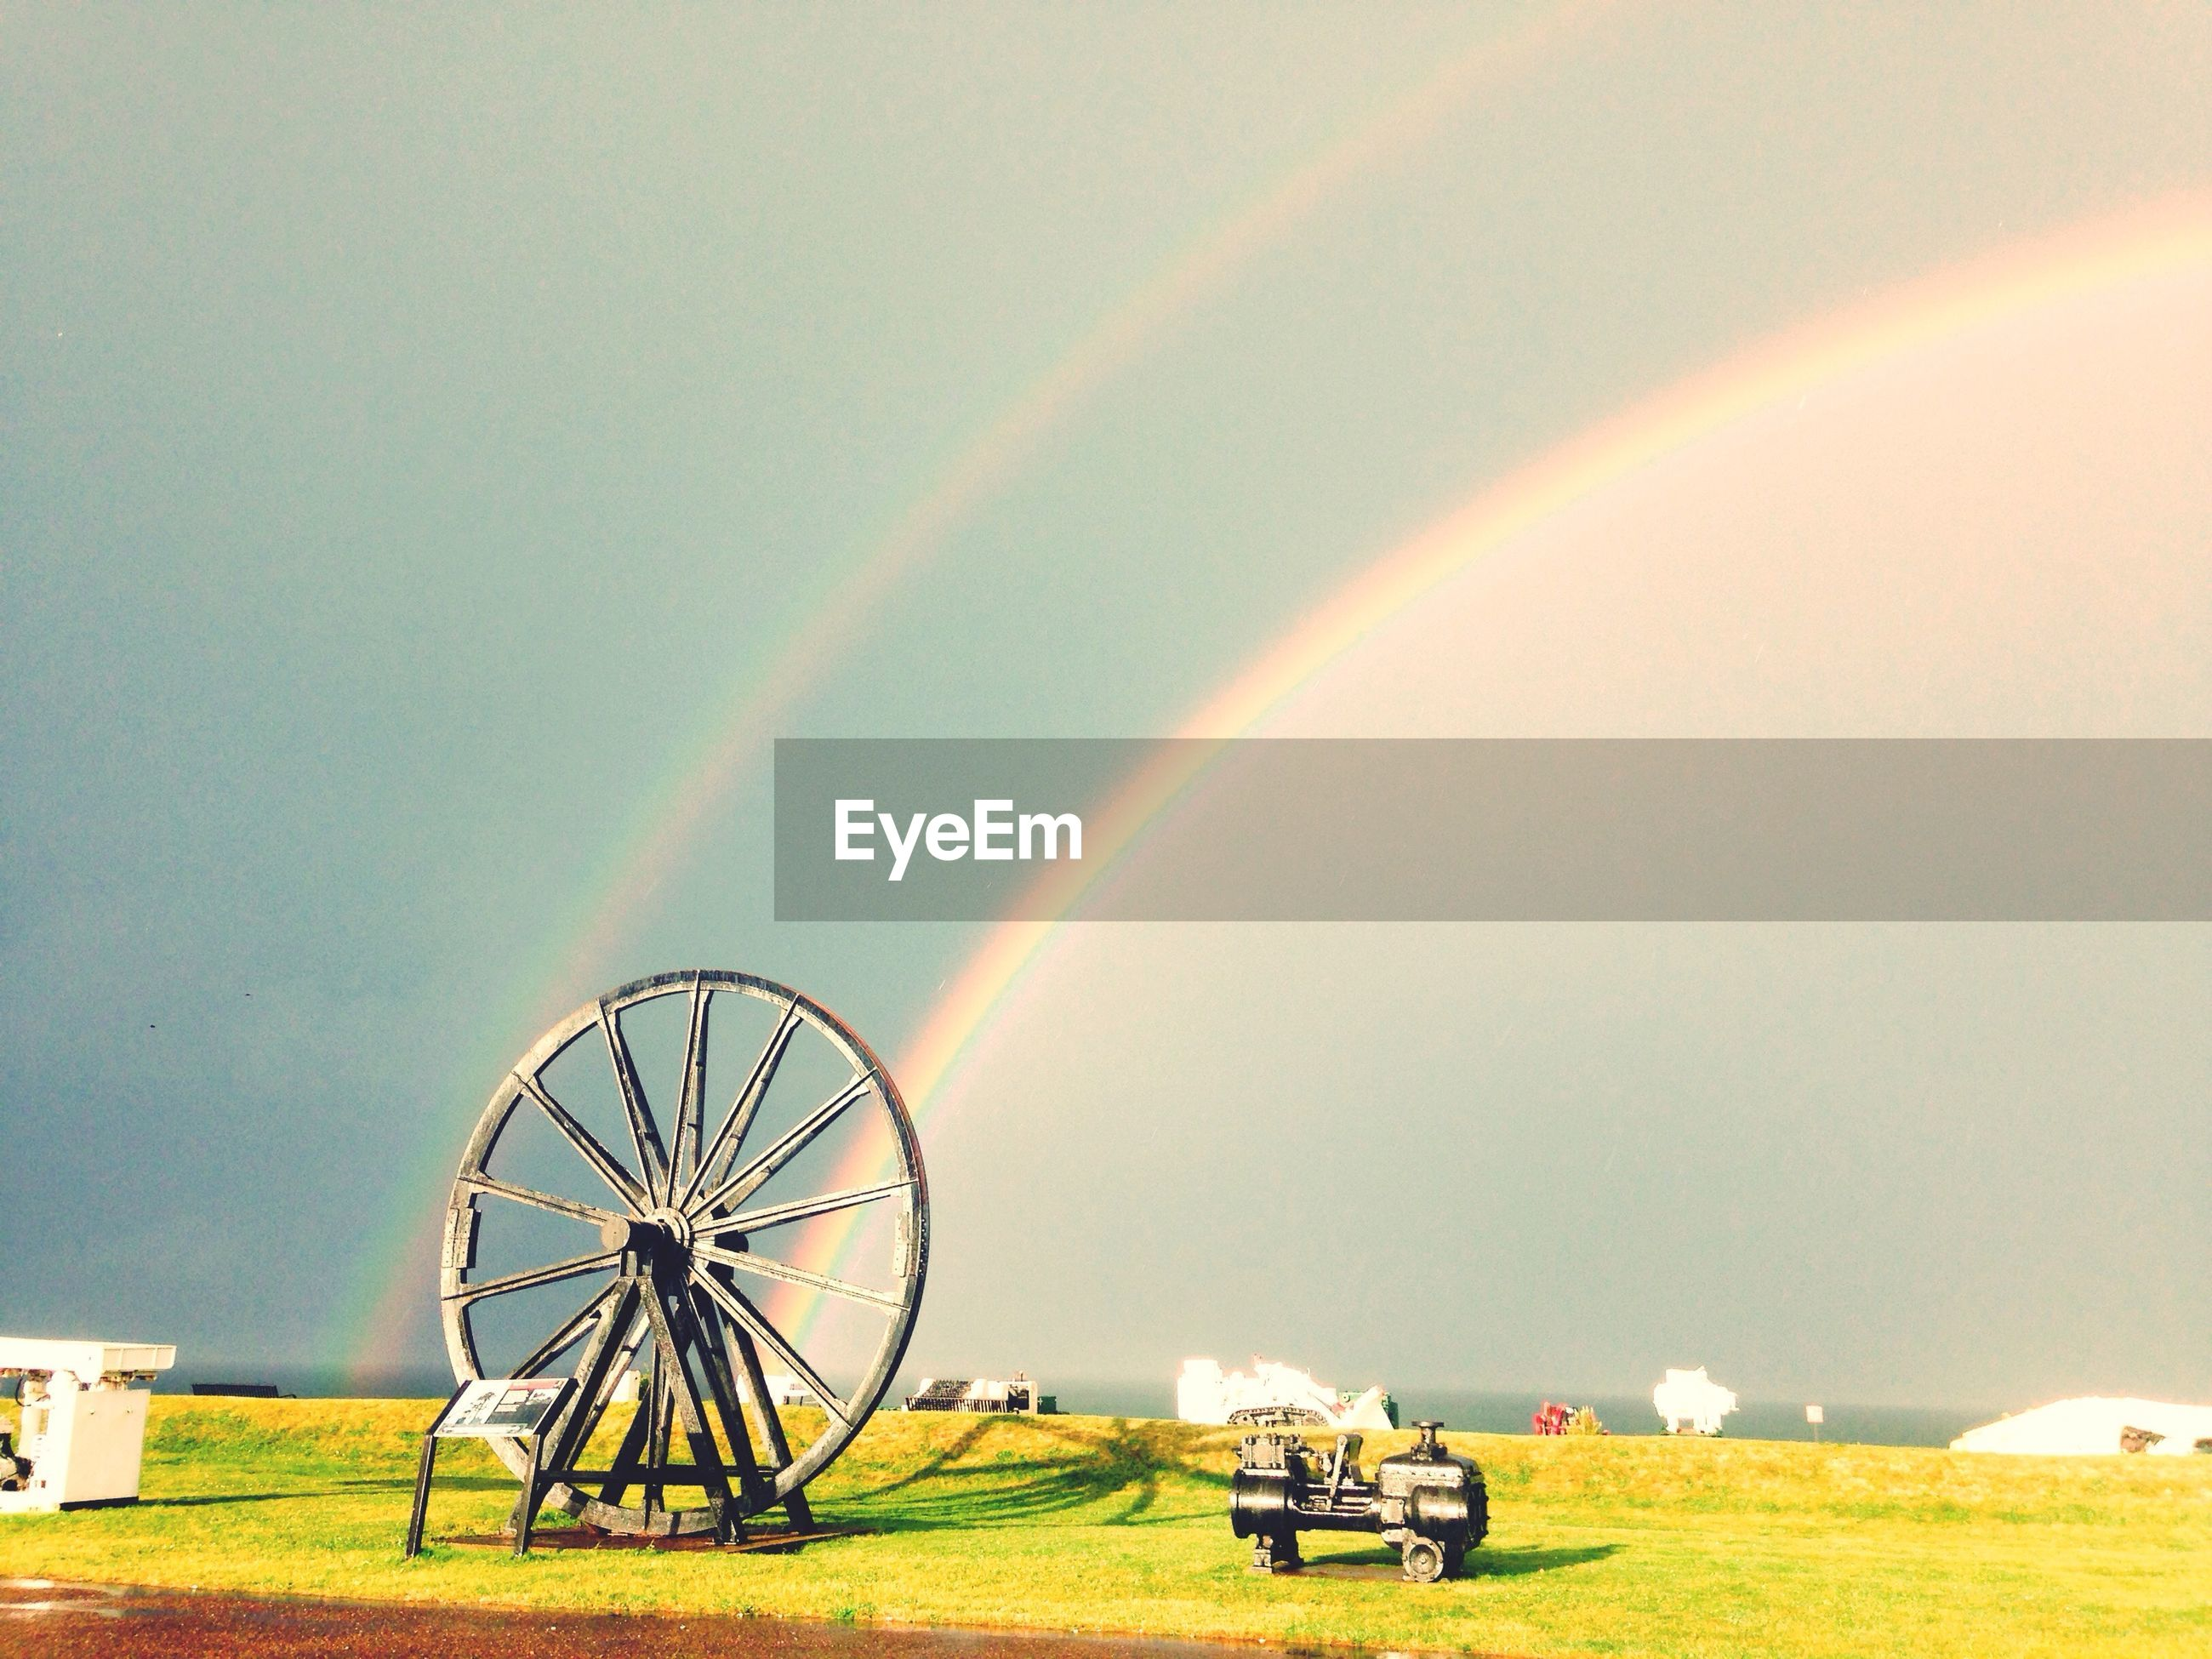 rainbow, grass, multi colored, landscape, transportation, rural scene, cloud, ferris wheel, clear sky, grassland, day, nature, arch, tranquil scene, countryside, beauty in nature, scenics, outdoors, sky, tranquility, colorful, green, agriculture, large, circle, solitude